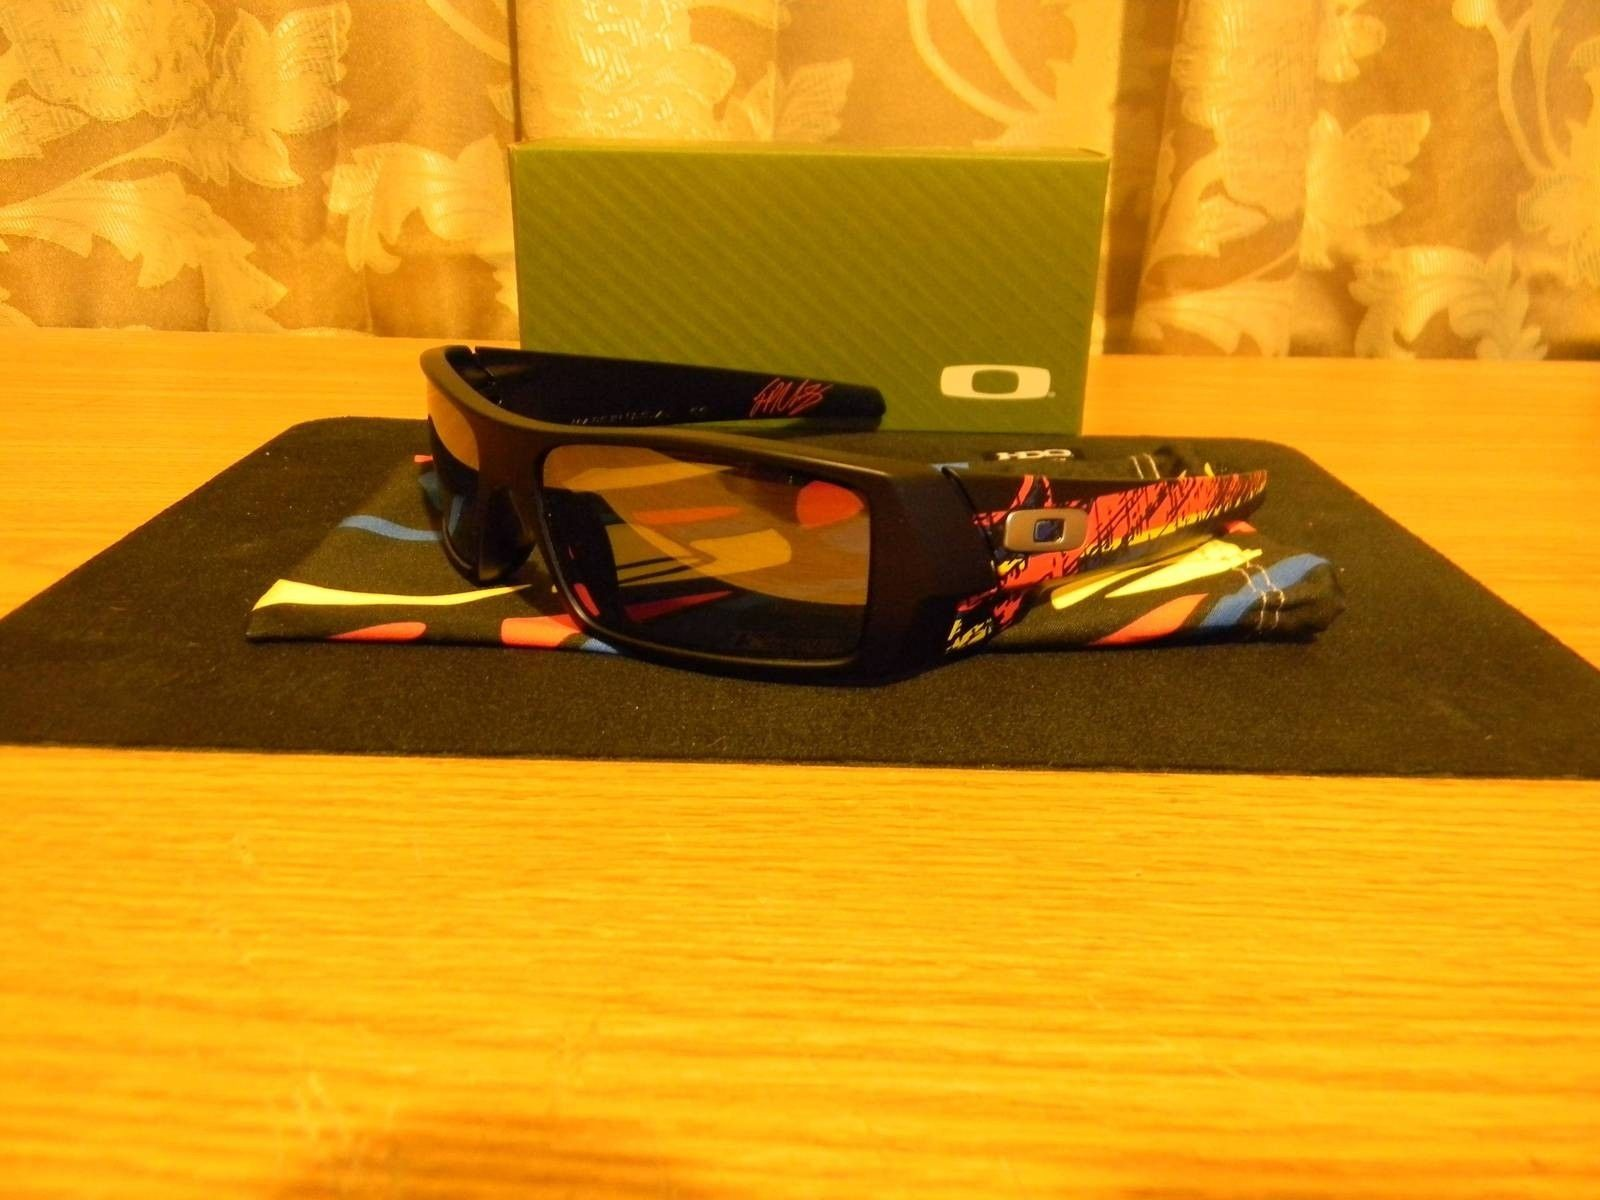 Oakley Gascan Flying Tiger Black Version  And JPM With Art On The Side - ZlpHy.jpg